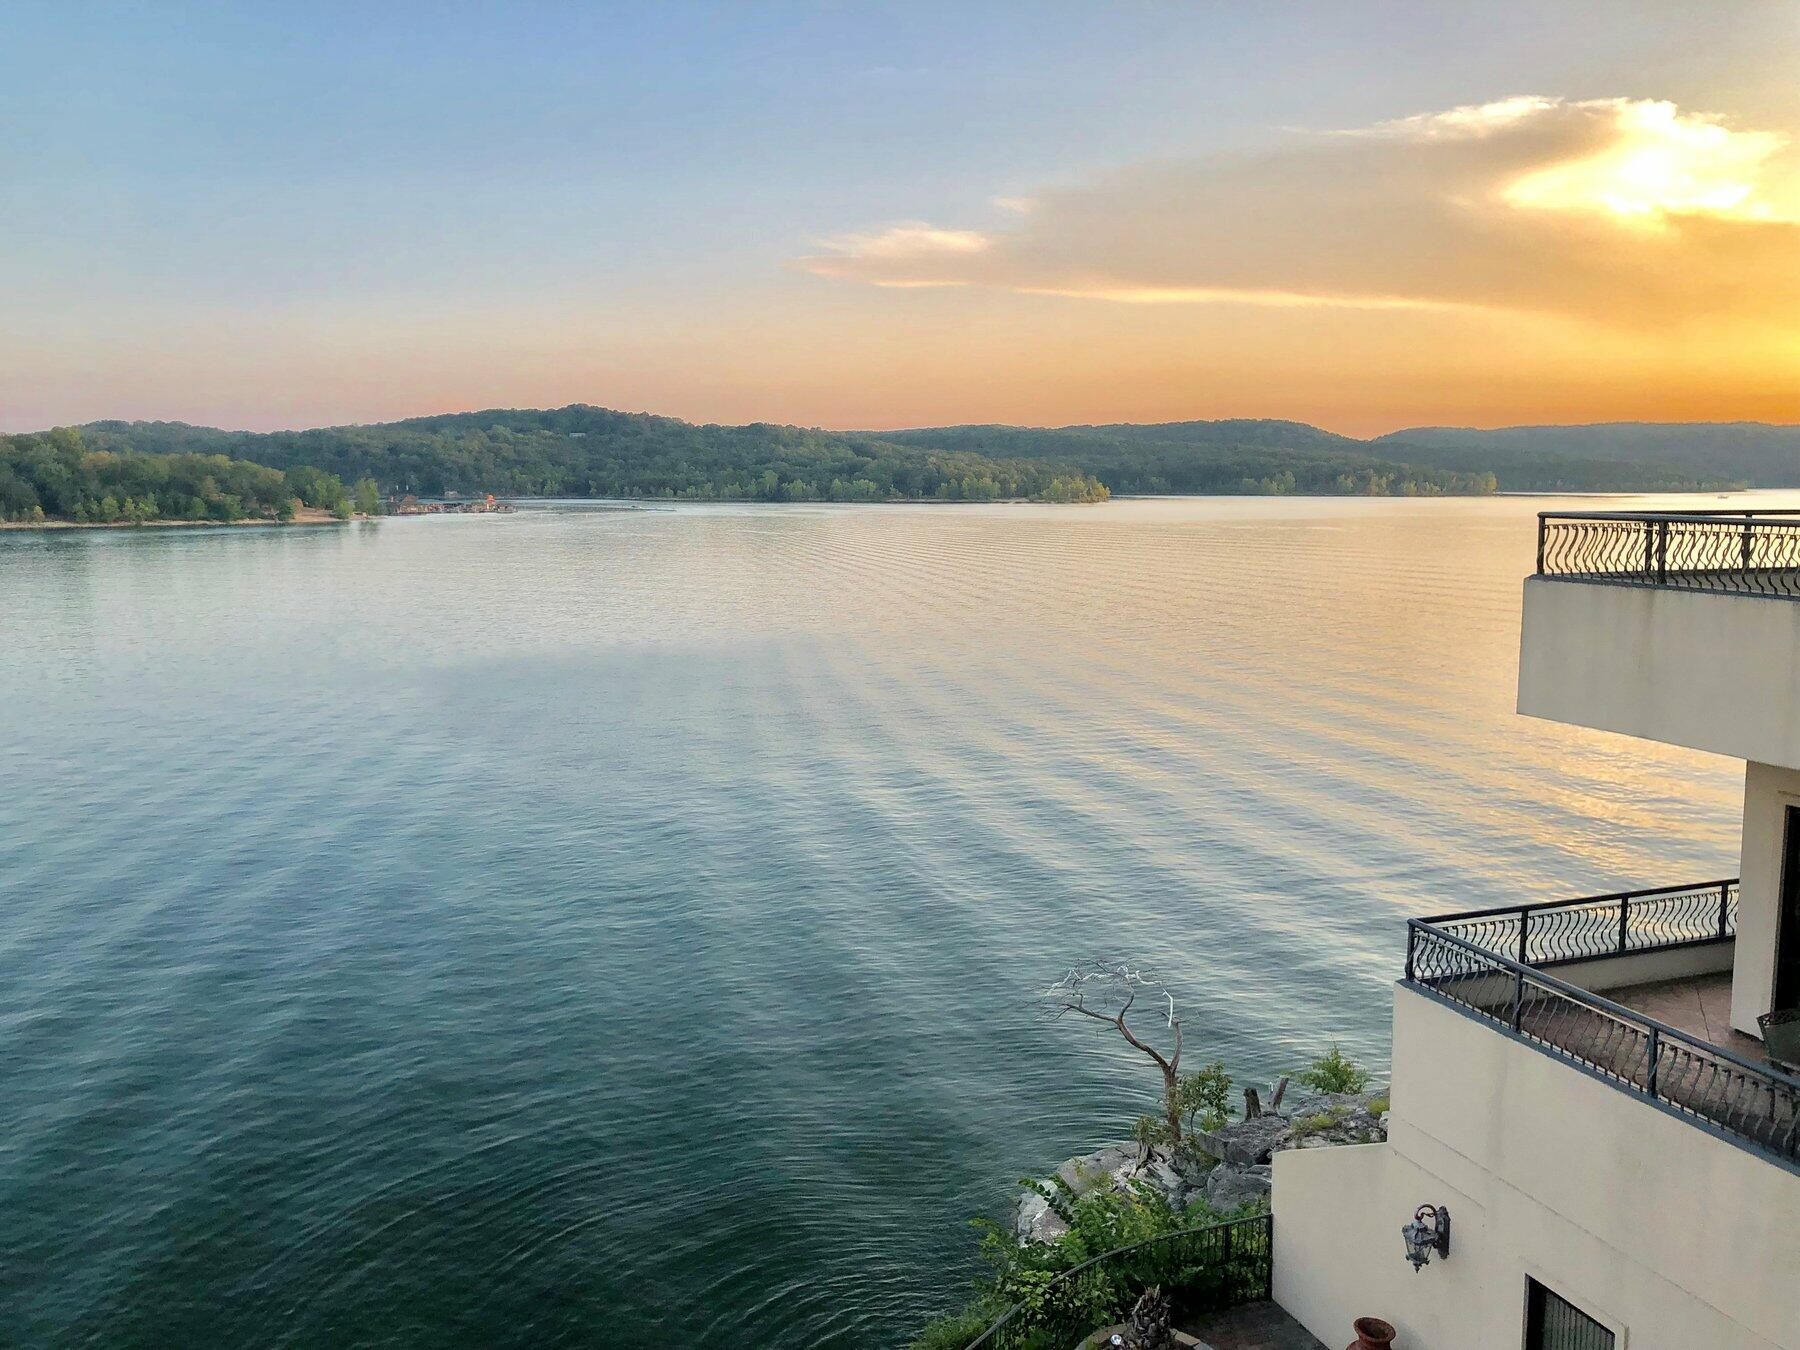 hotel on a lake in missouri